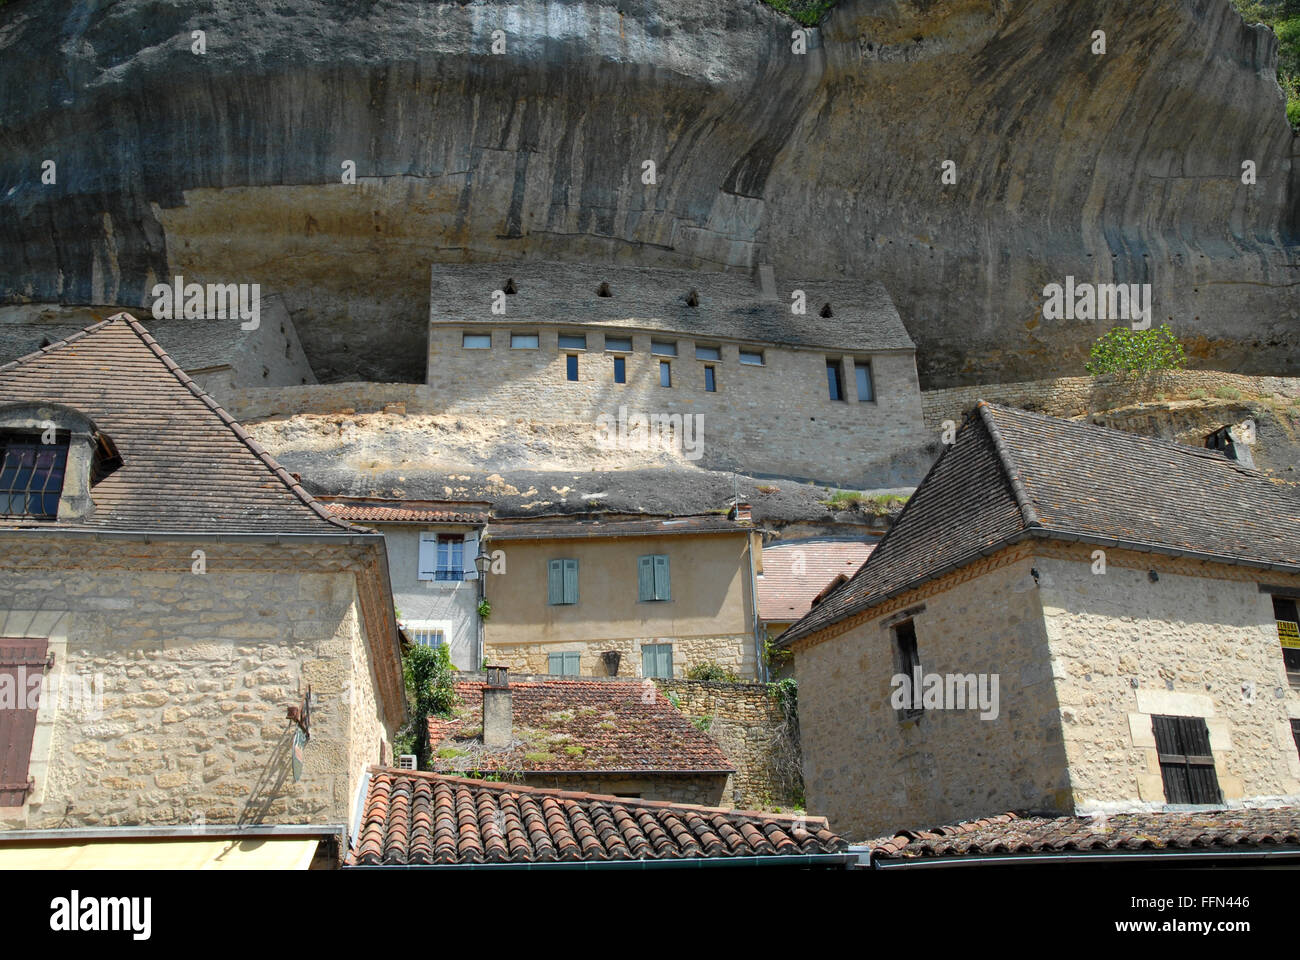 Les Eyzies-de-Tayac, showing part of the National Prehistory Museum built into the limestone rock. - Stock Image